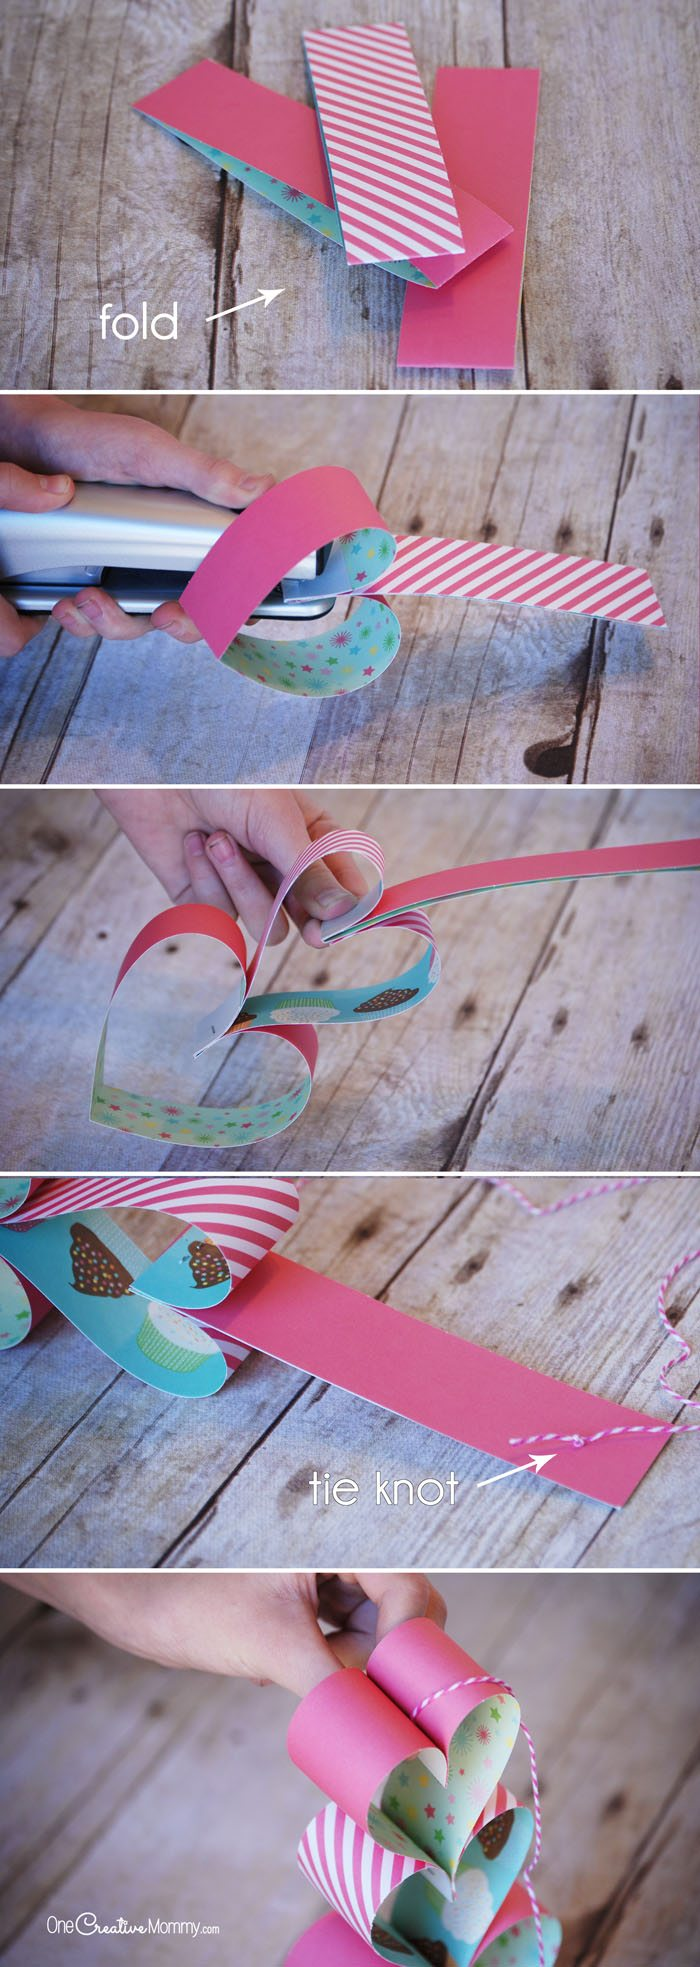 Quick and easy valentine crafts - These Heart Paper Chains Are A Perfect Quick And Easy Valentine Craft For Kids Create